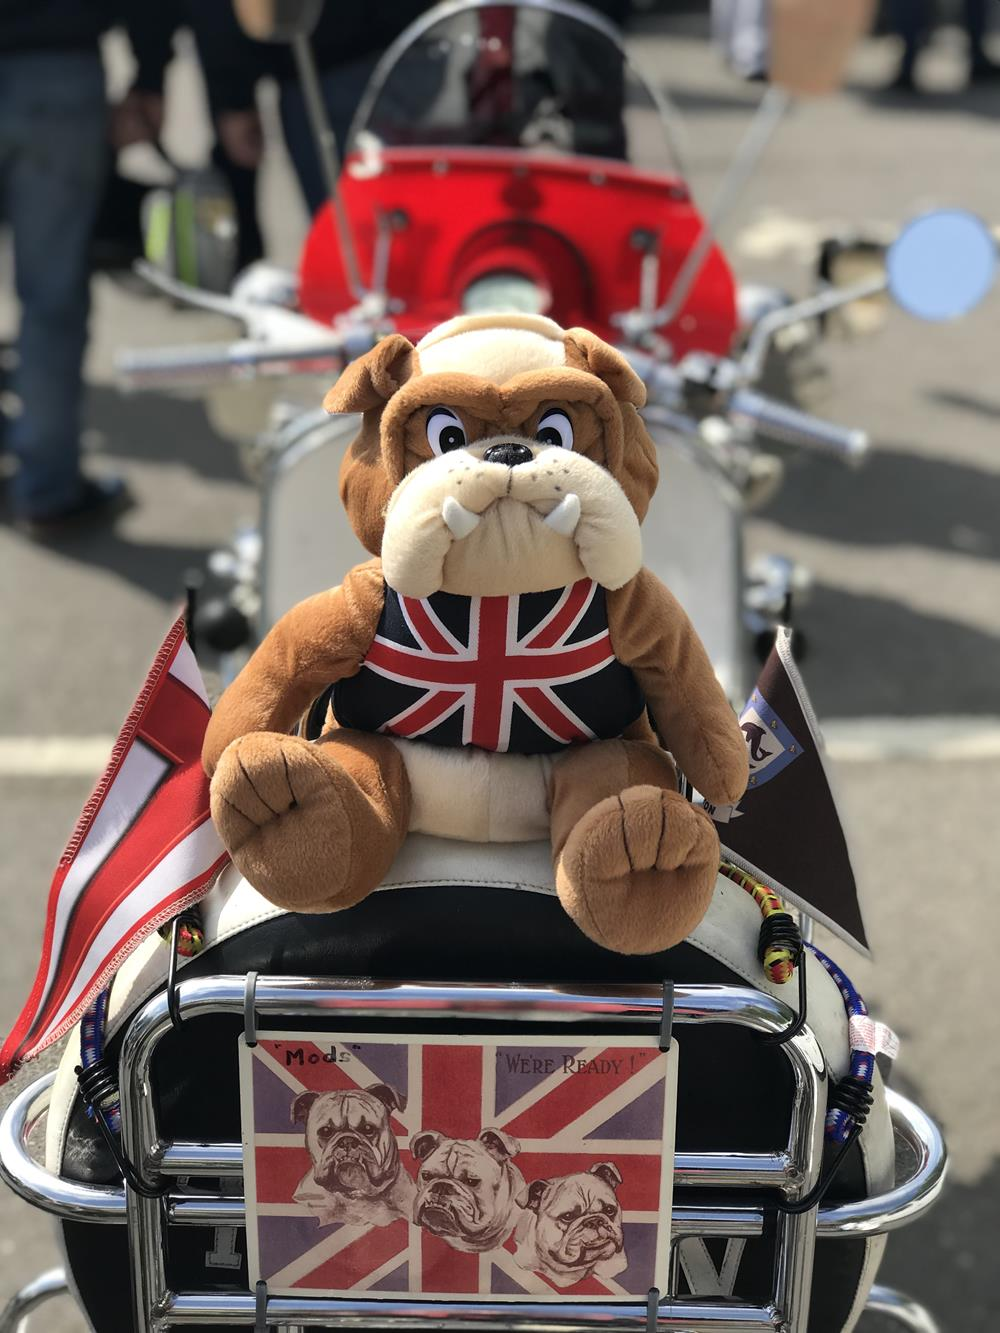 Bulldog cuddly toy attached to the back of a Vespa scooter